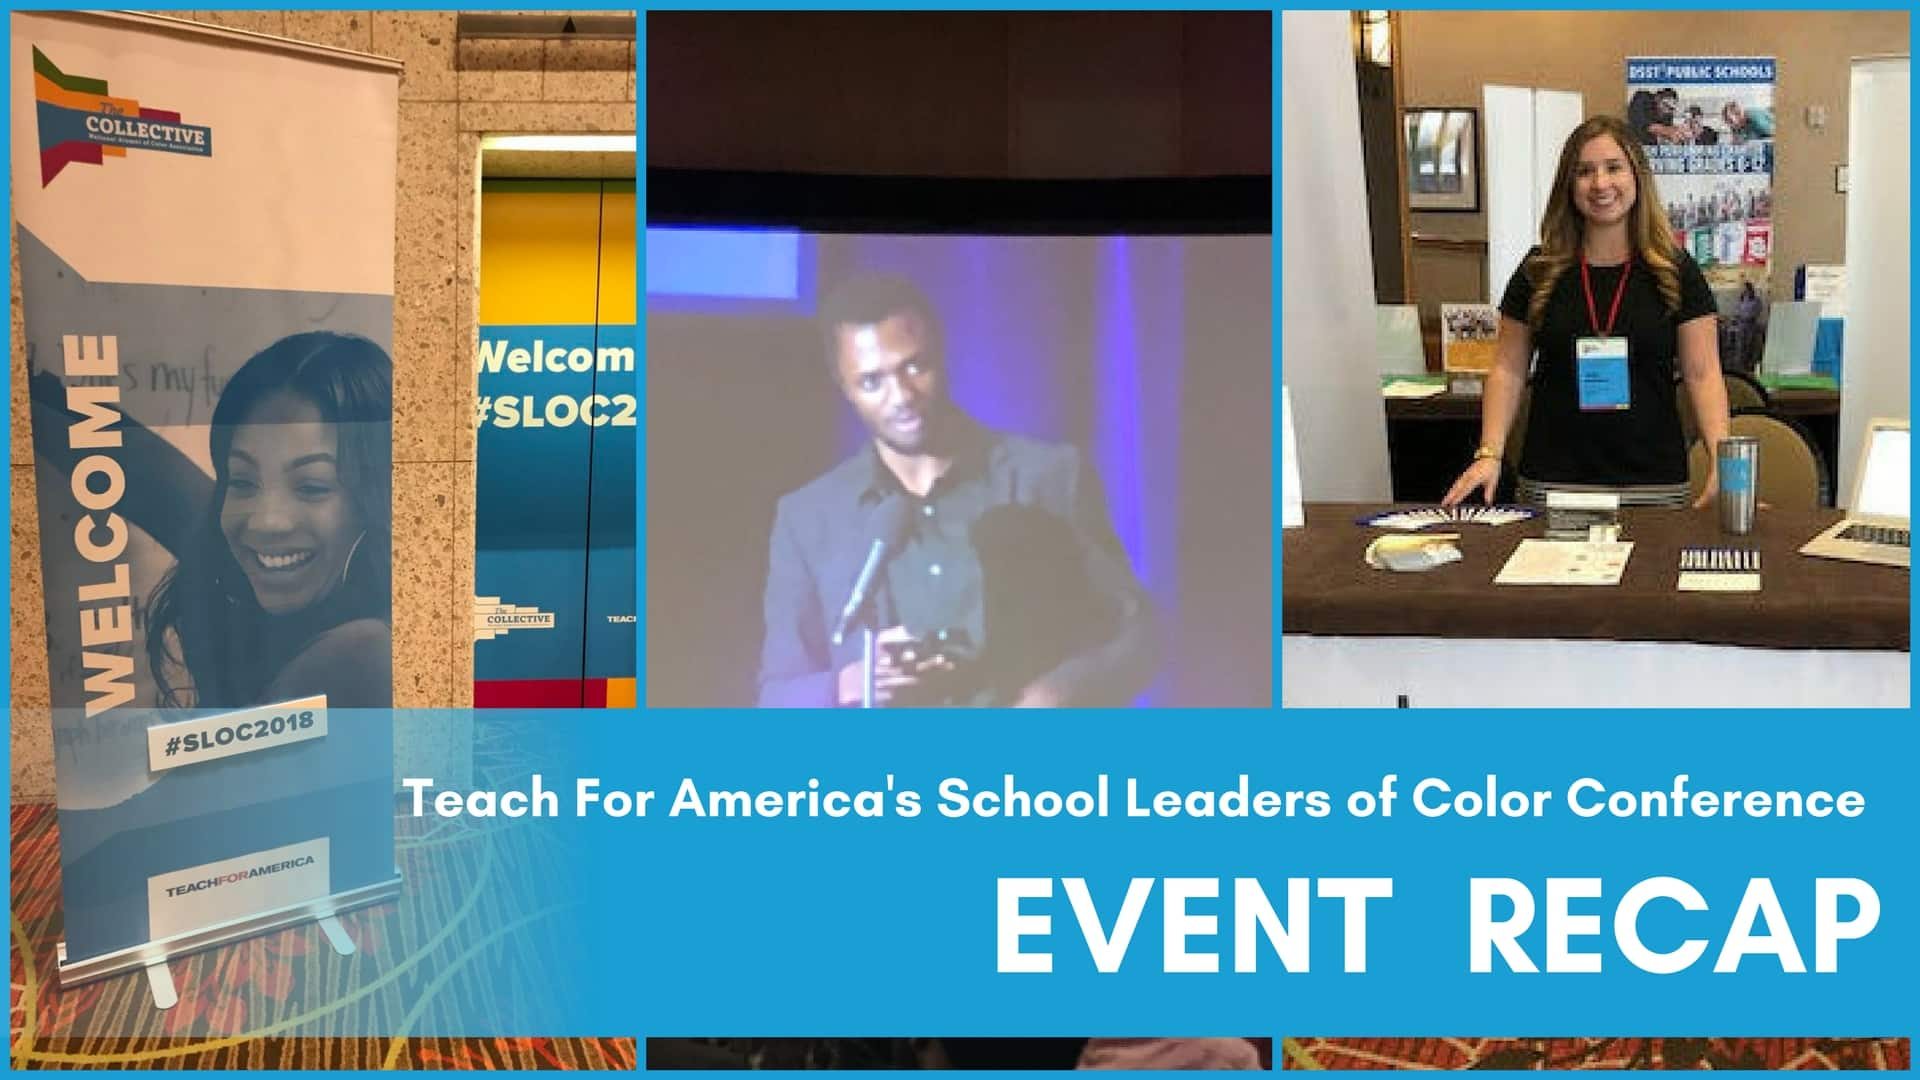 Teach For America's School Leaders Of Color Conference - Our Favorite Conference Twitter Recaps